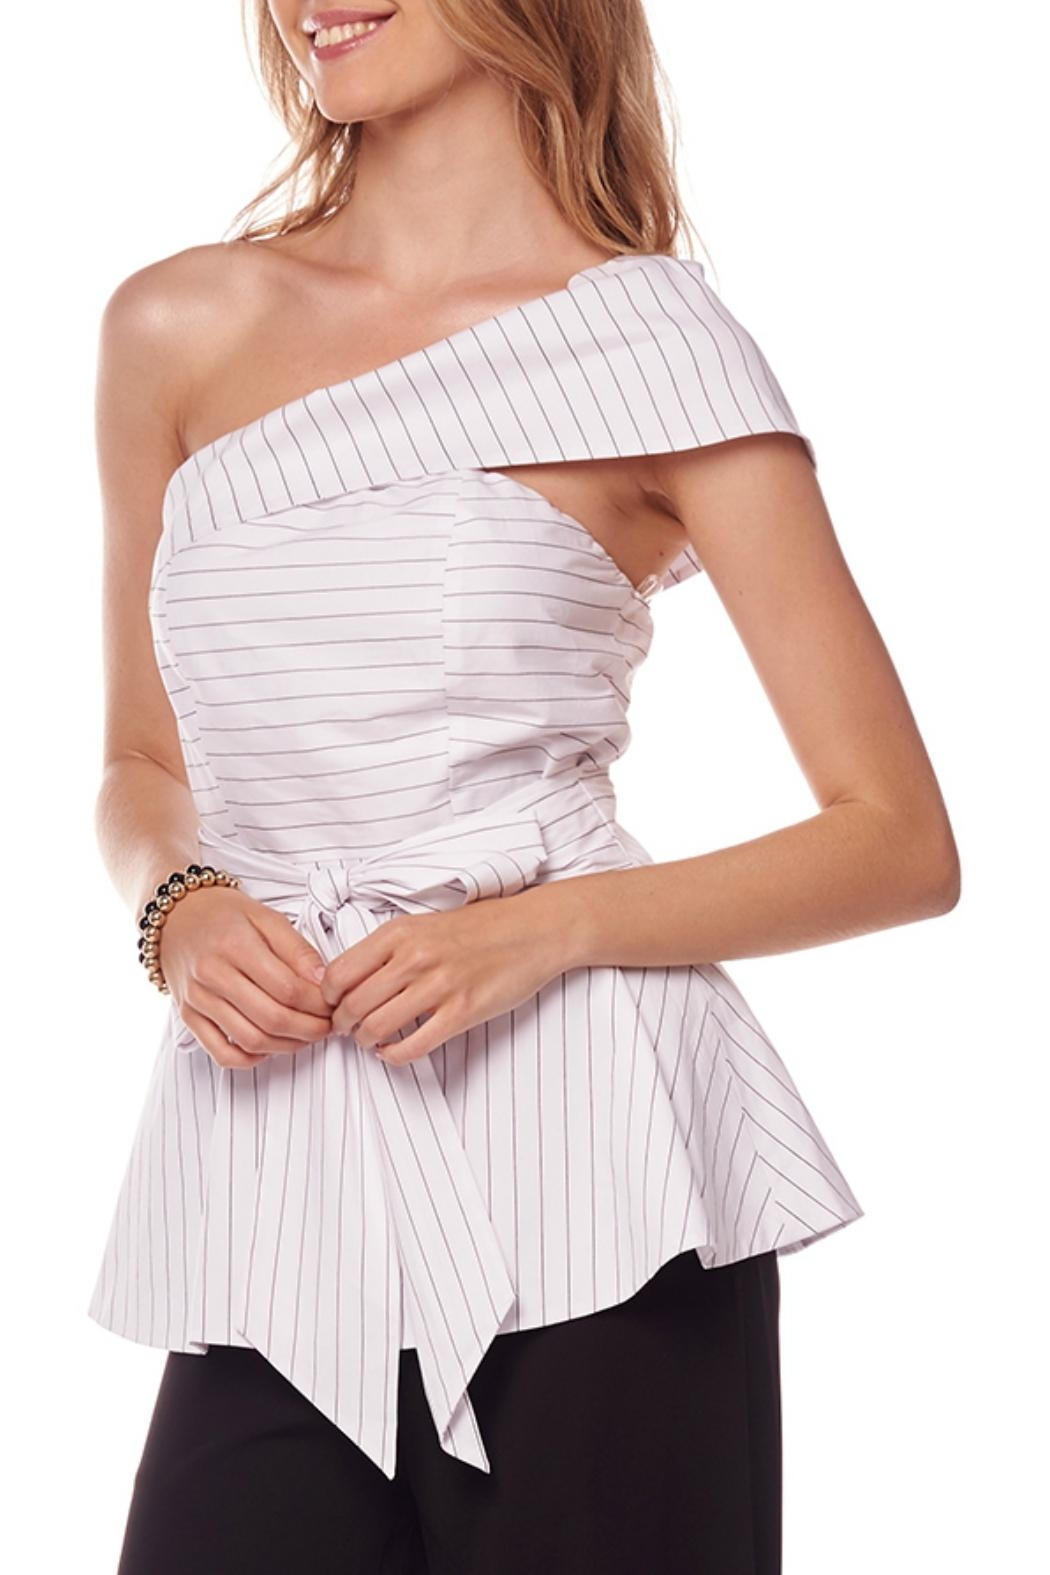 Gracia Pinstripe One Shoulder Top - Front Full Image